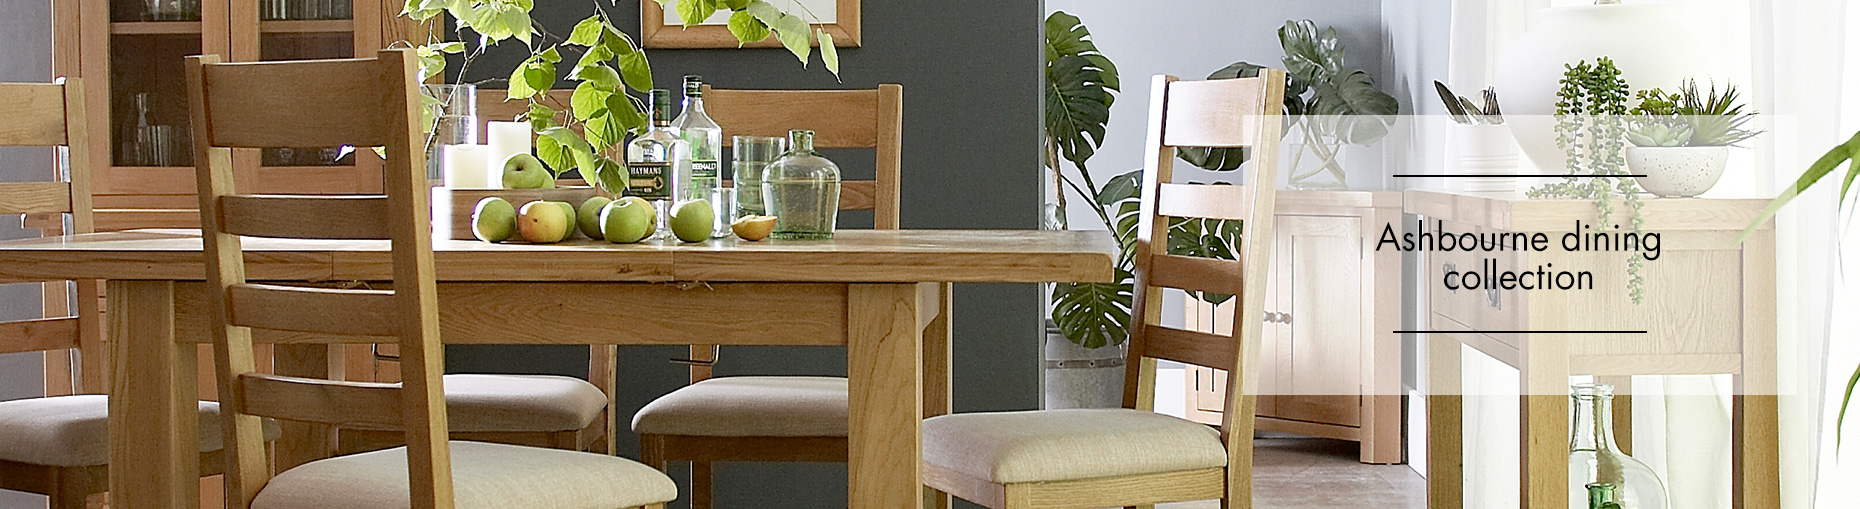 Ashbourne oak dining collection at Forrest Furnishing